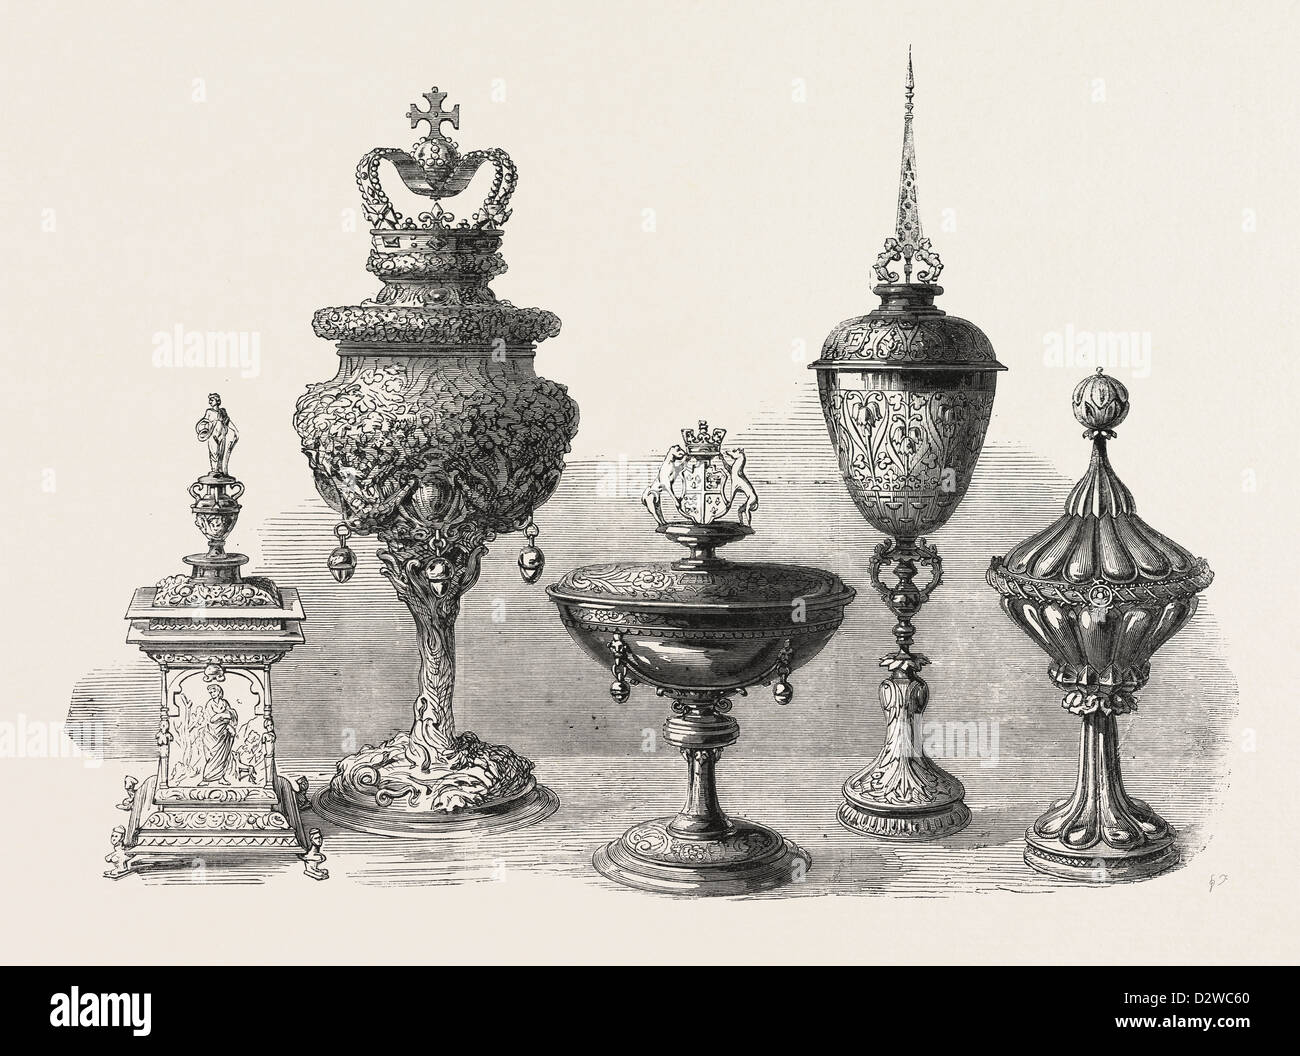 OBJECTS OF ART AND ANTIQUITY EXHIBITED AT IRONMONGER'S HALL - Stock Image